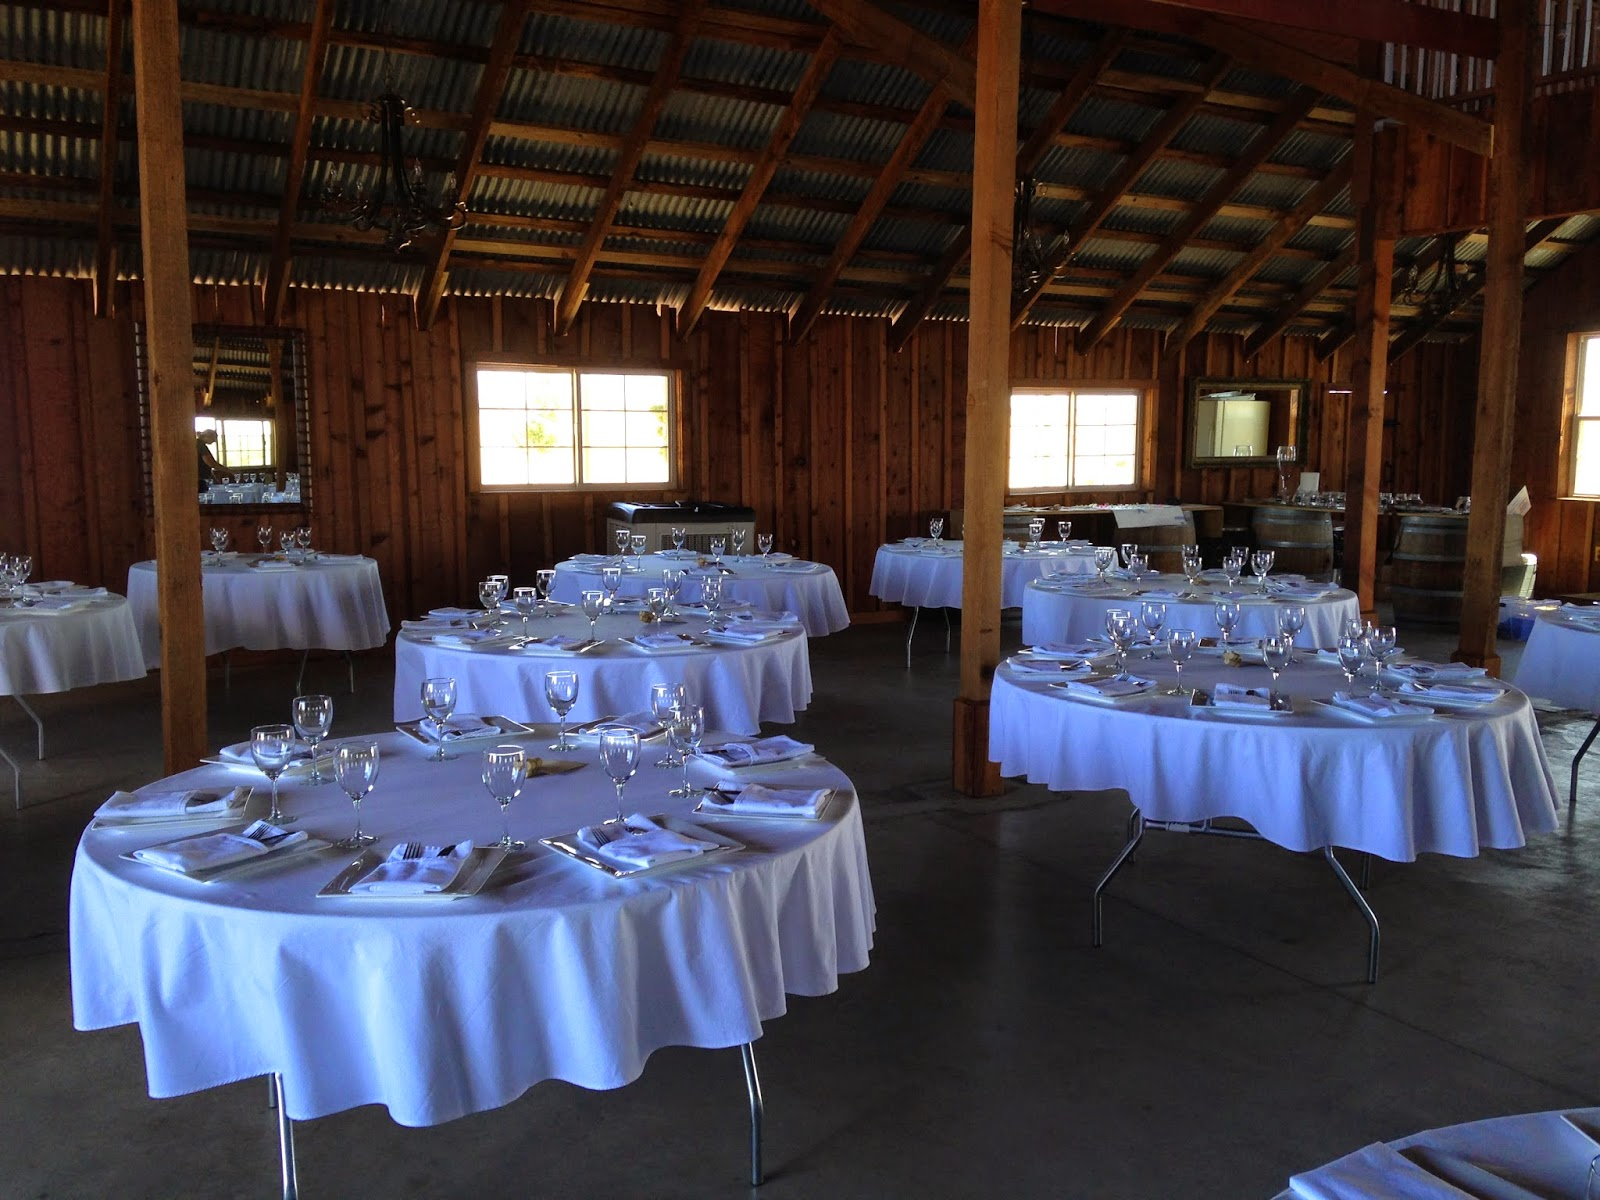 Table settings in a barn for a wedding in California